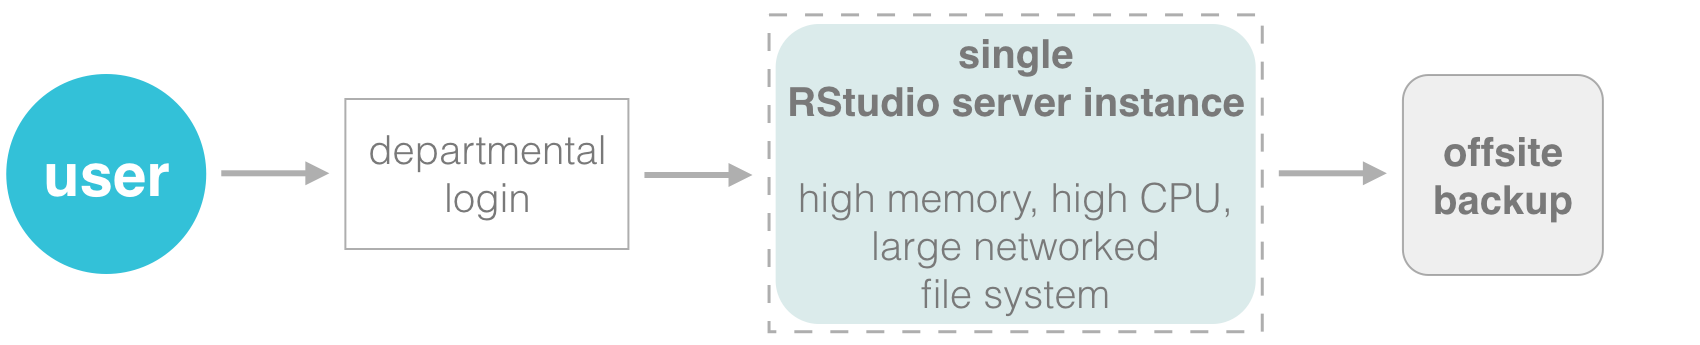 Centralized RStudio server